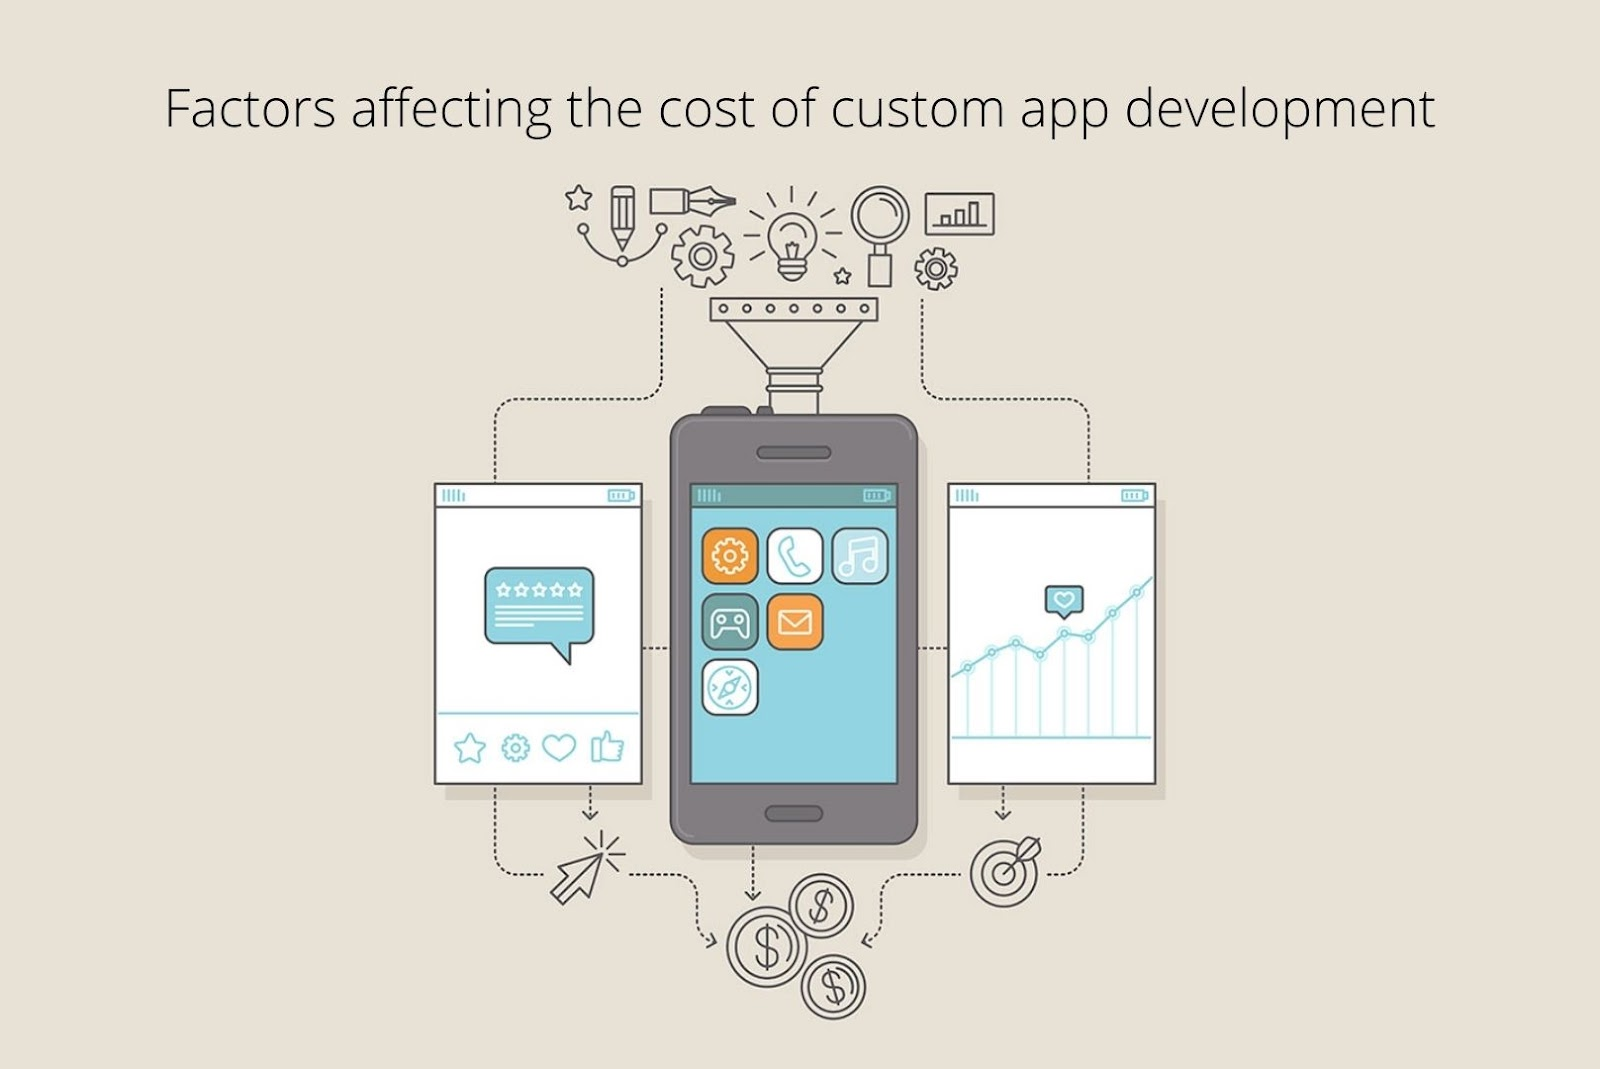 Factors affecting the cost of custom app development